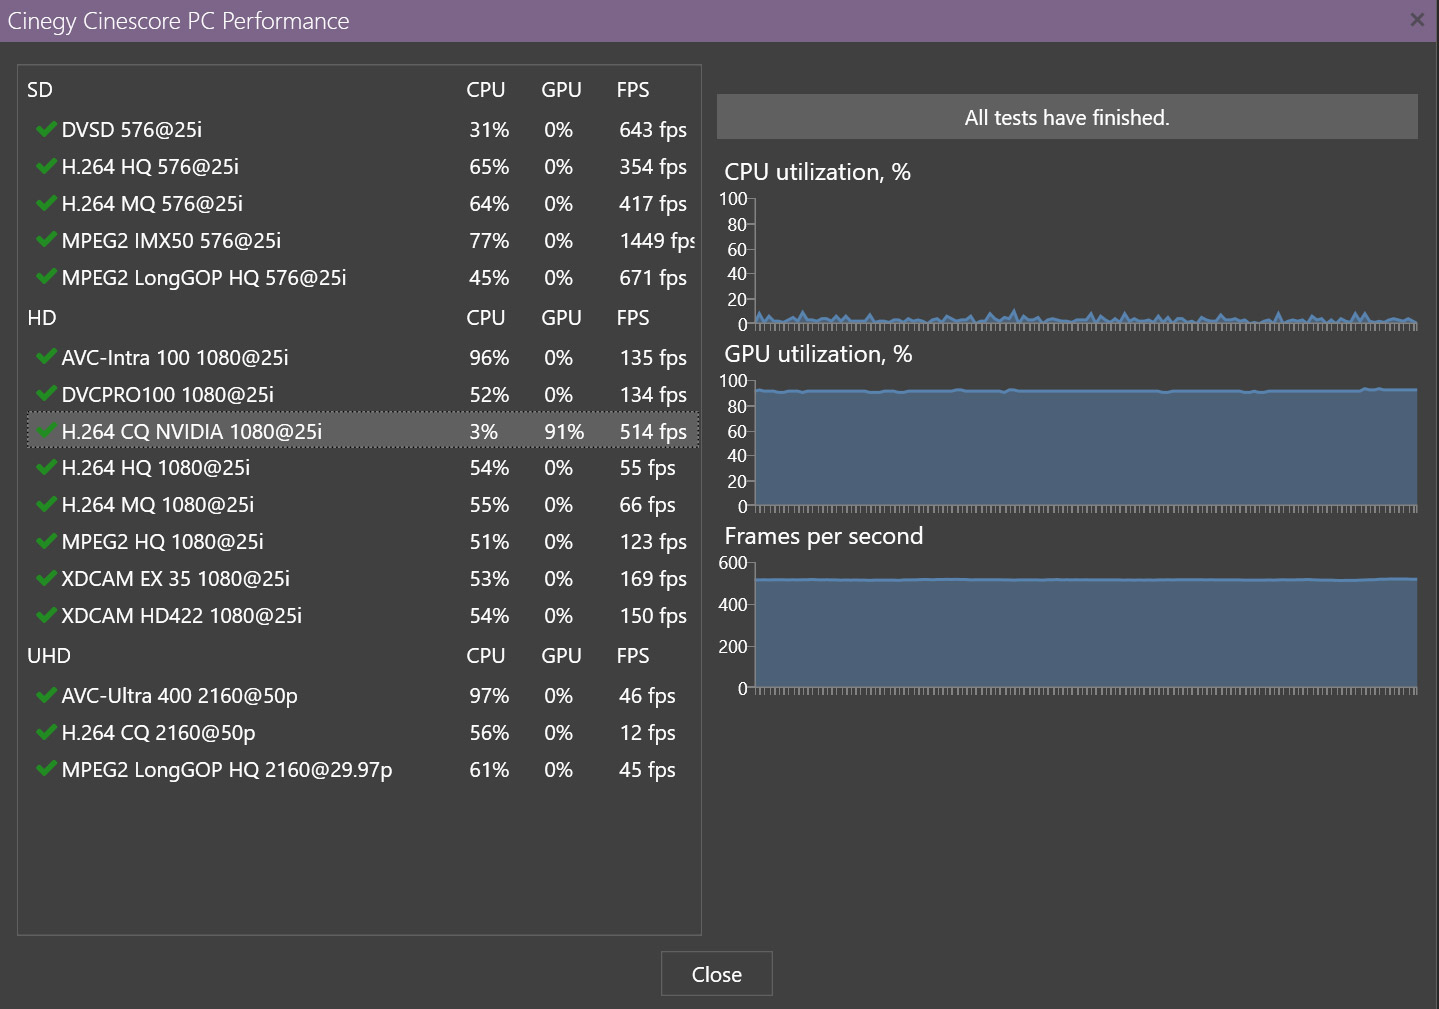 Cinegy Cinescore - Well Done Video Encoding Benchmark